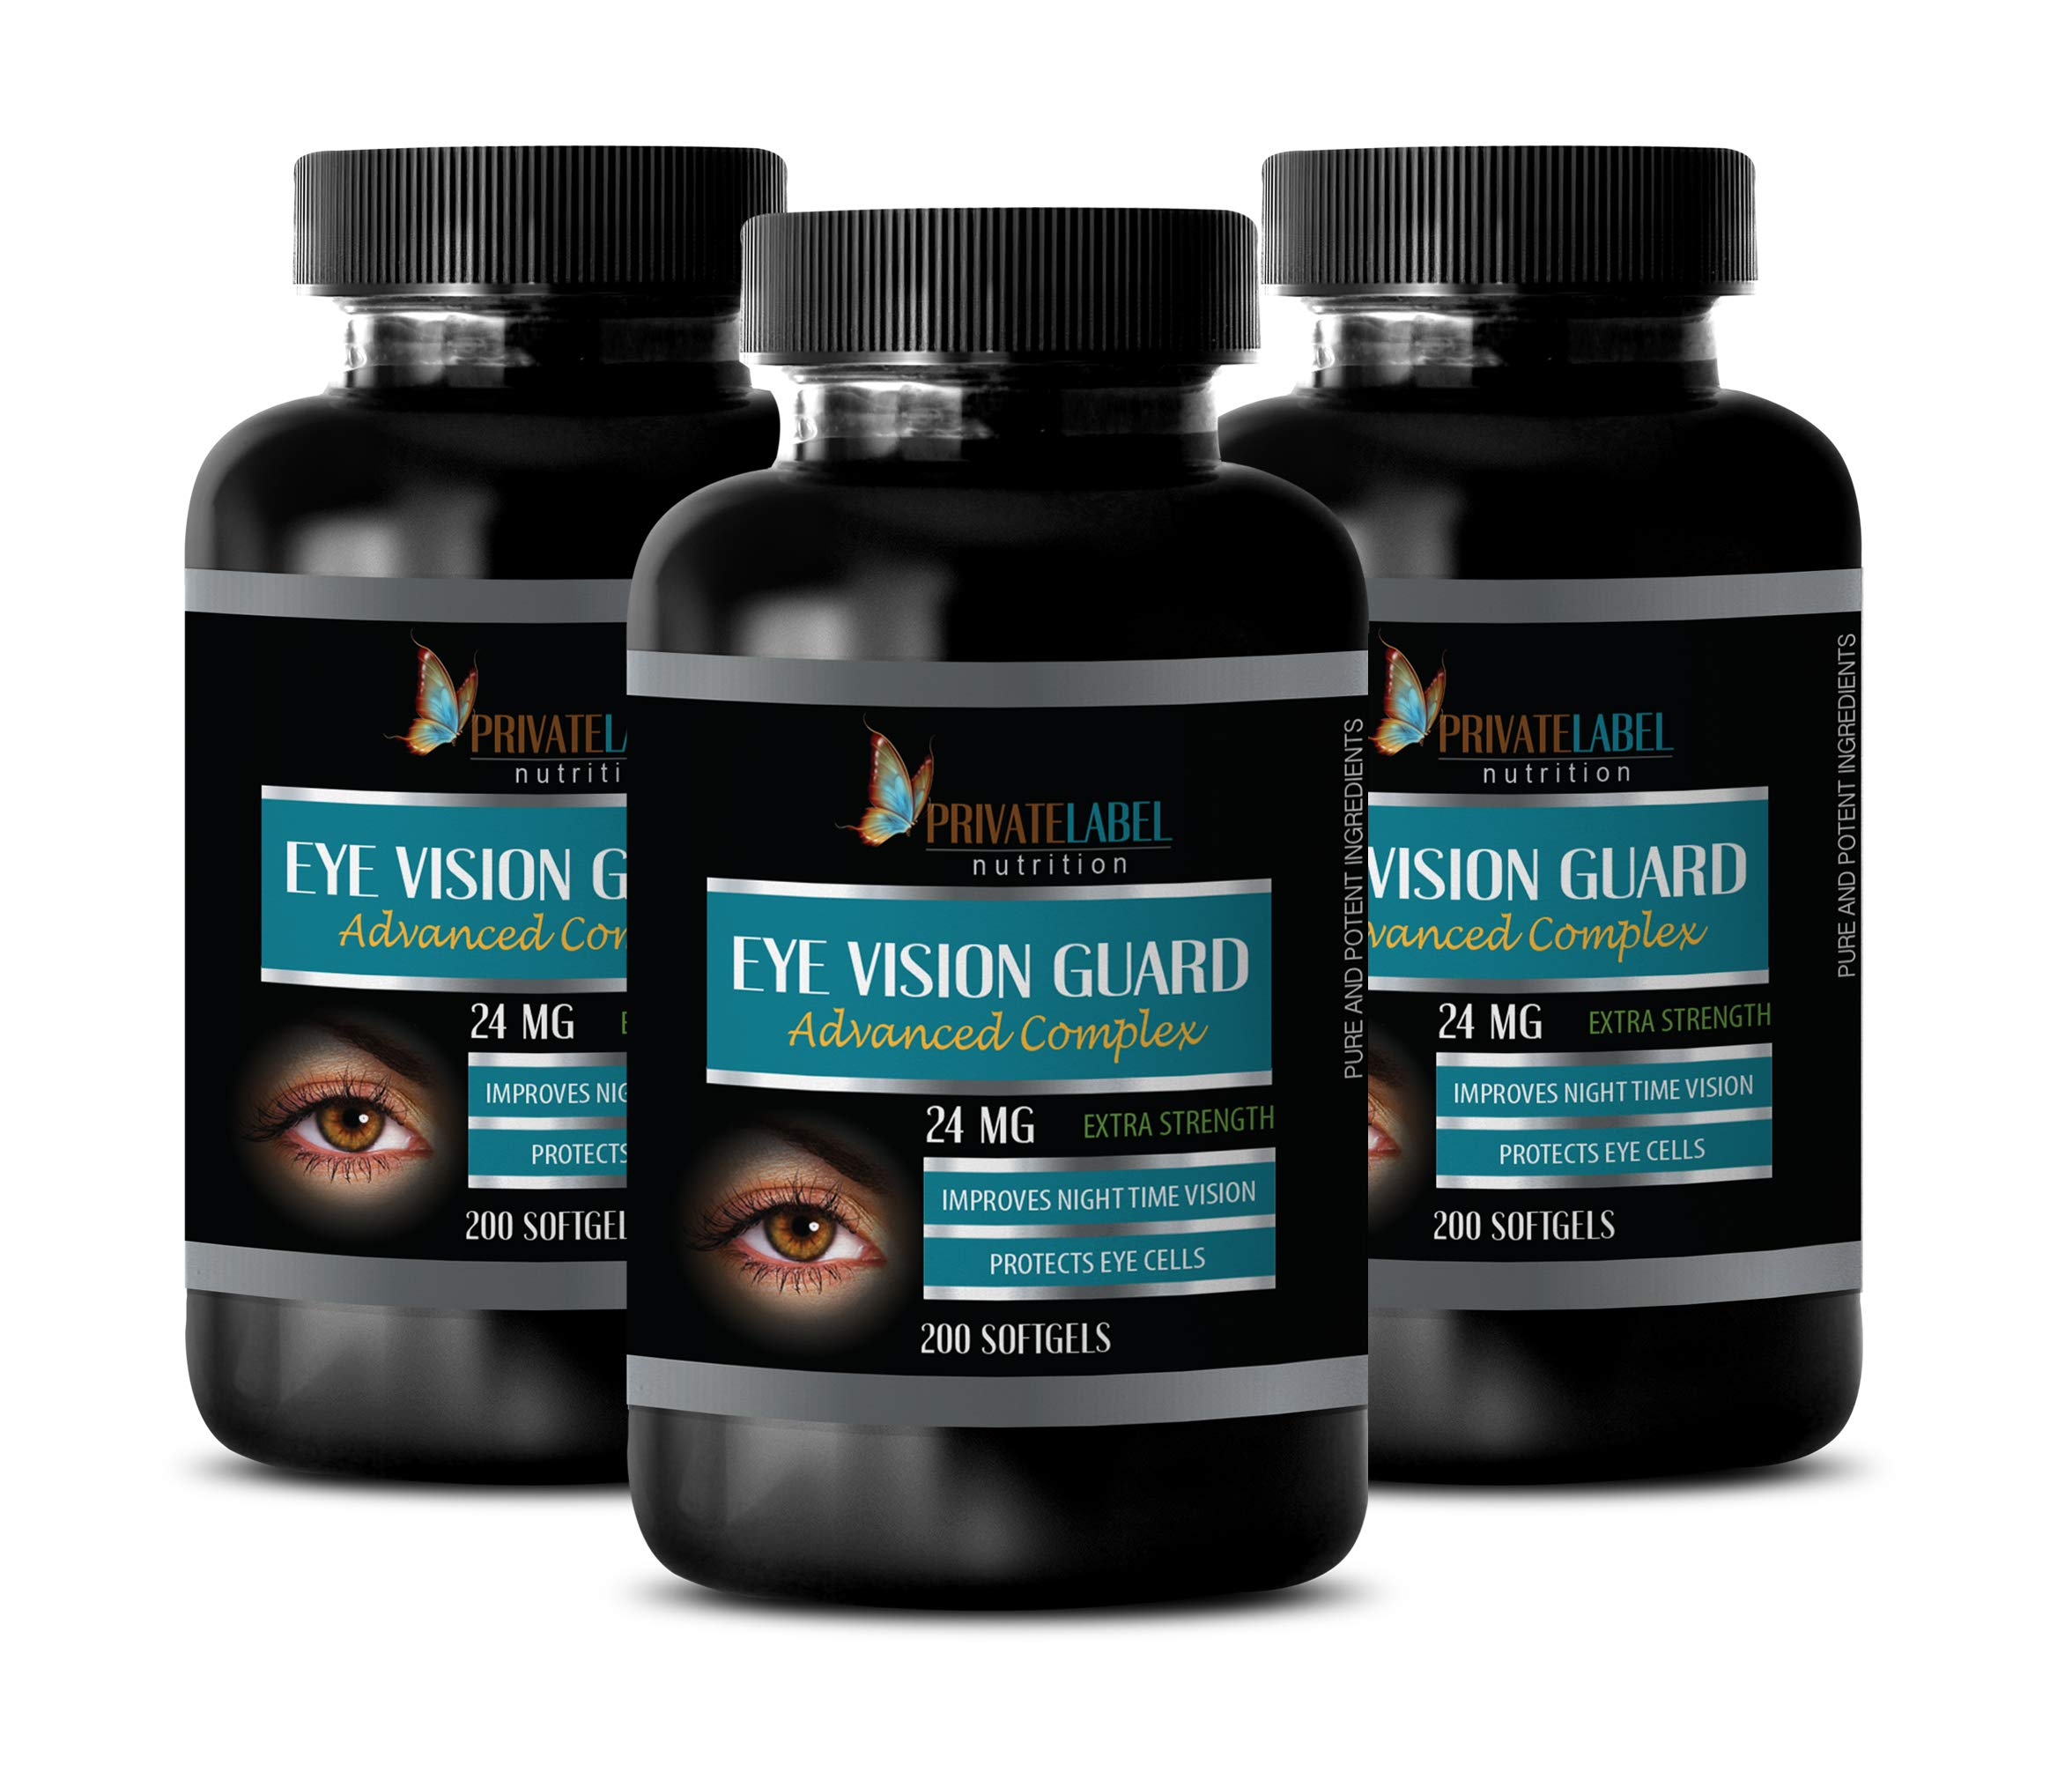 Vision Plus Eye Vitamin and antioxidant - Eye Vision Guard 24 MG - Advanced Complex - Bilberry Herbal Supplement - 3 Bottles 600 Softgels